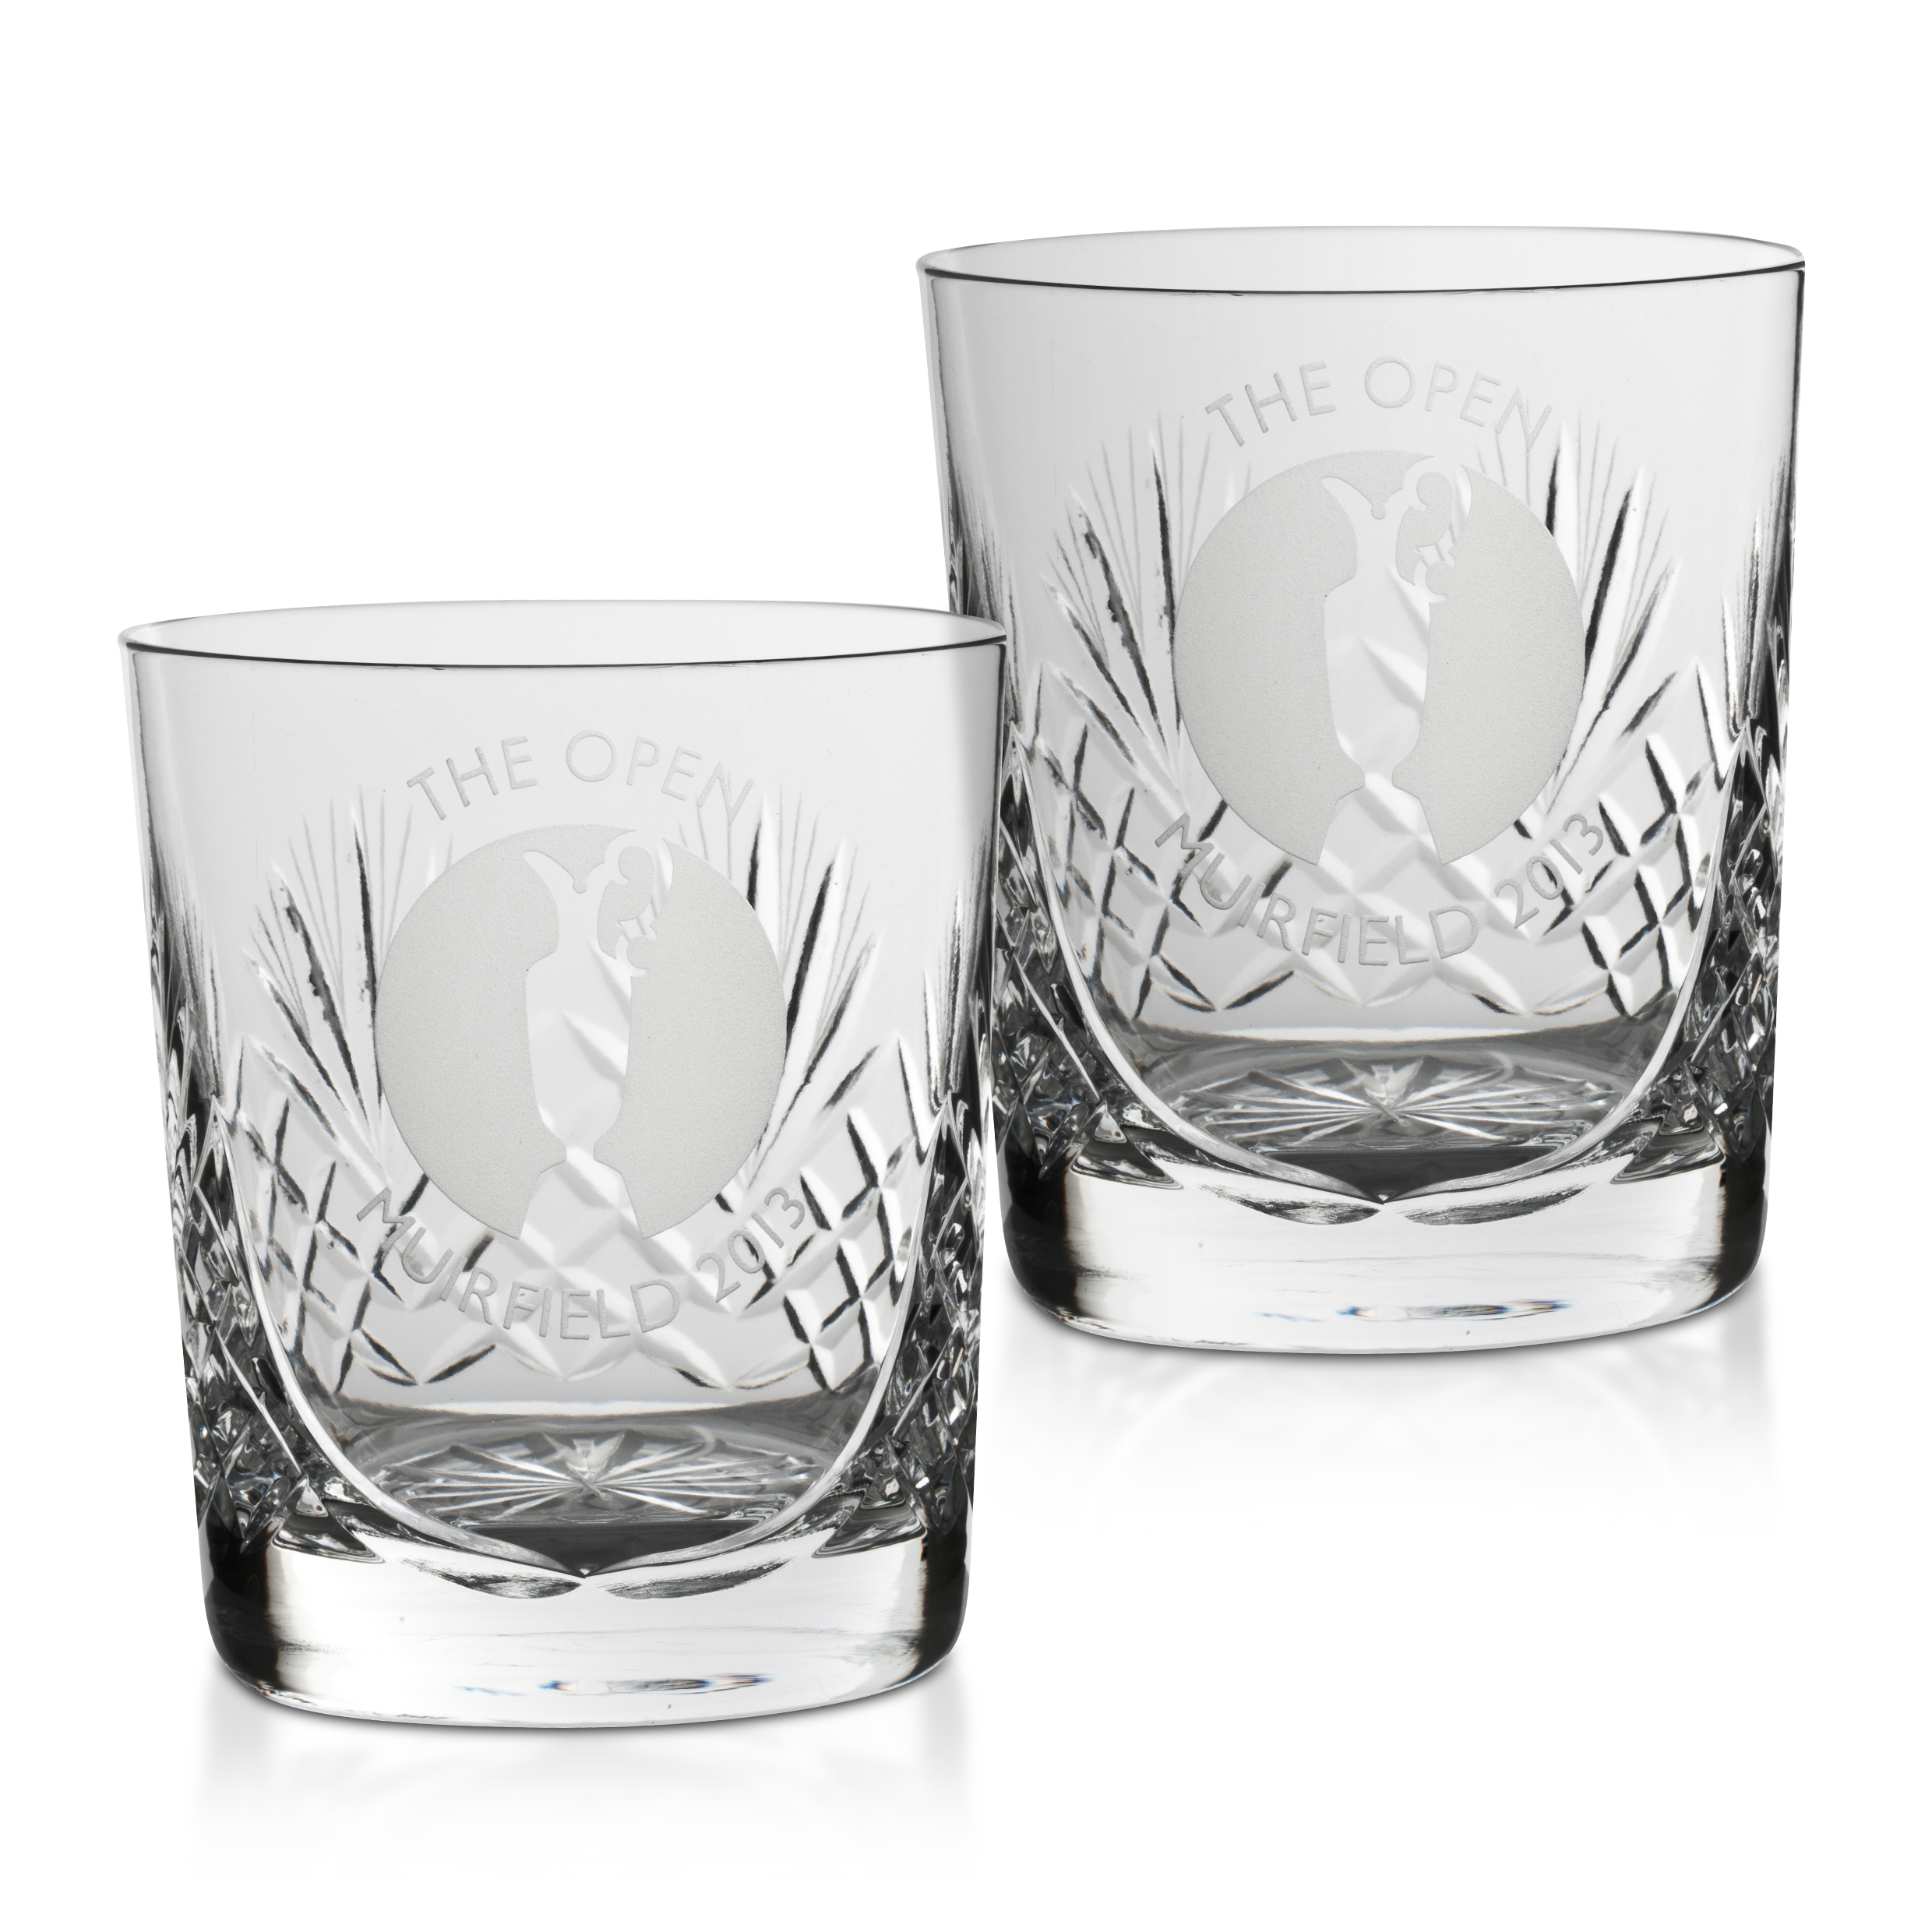 The Open Championship 2013 Muirfield Durham Small Whisky Glass - Pair